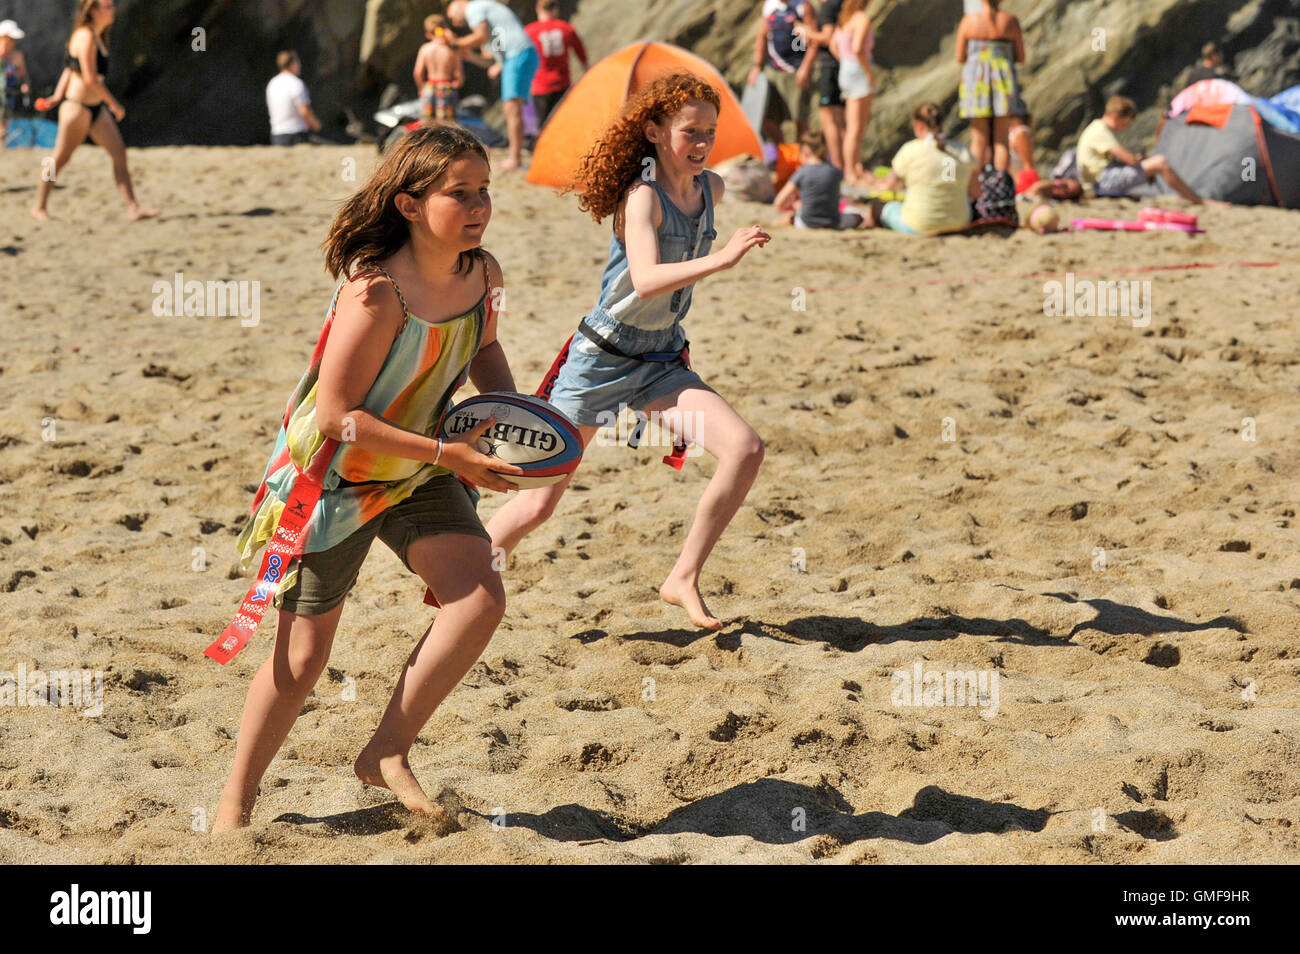 Newquay, UK. 26th Aug, 2016. Lusty Glaze, Newquay, Cornwall. 26th August, 2016. Young Lizzie makes a determined - Stock Image